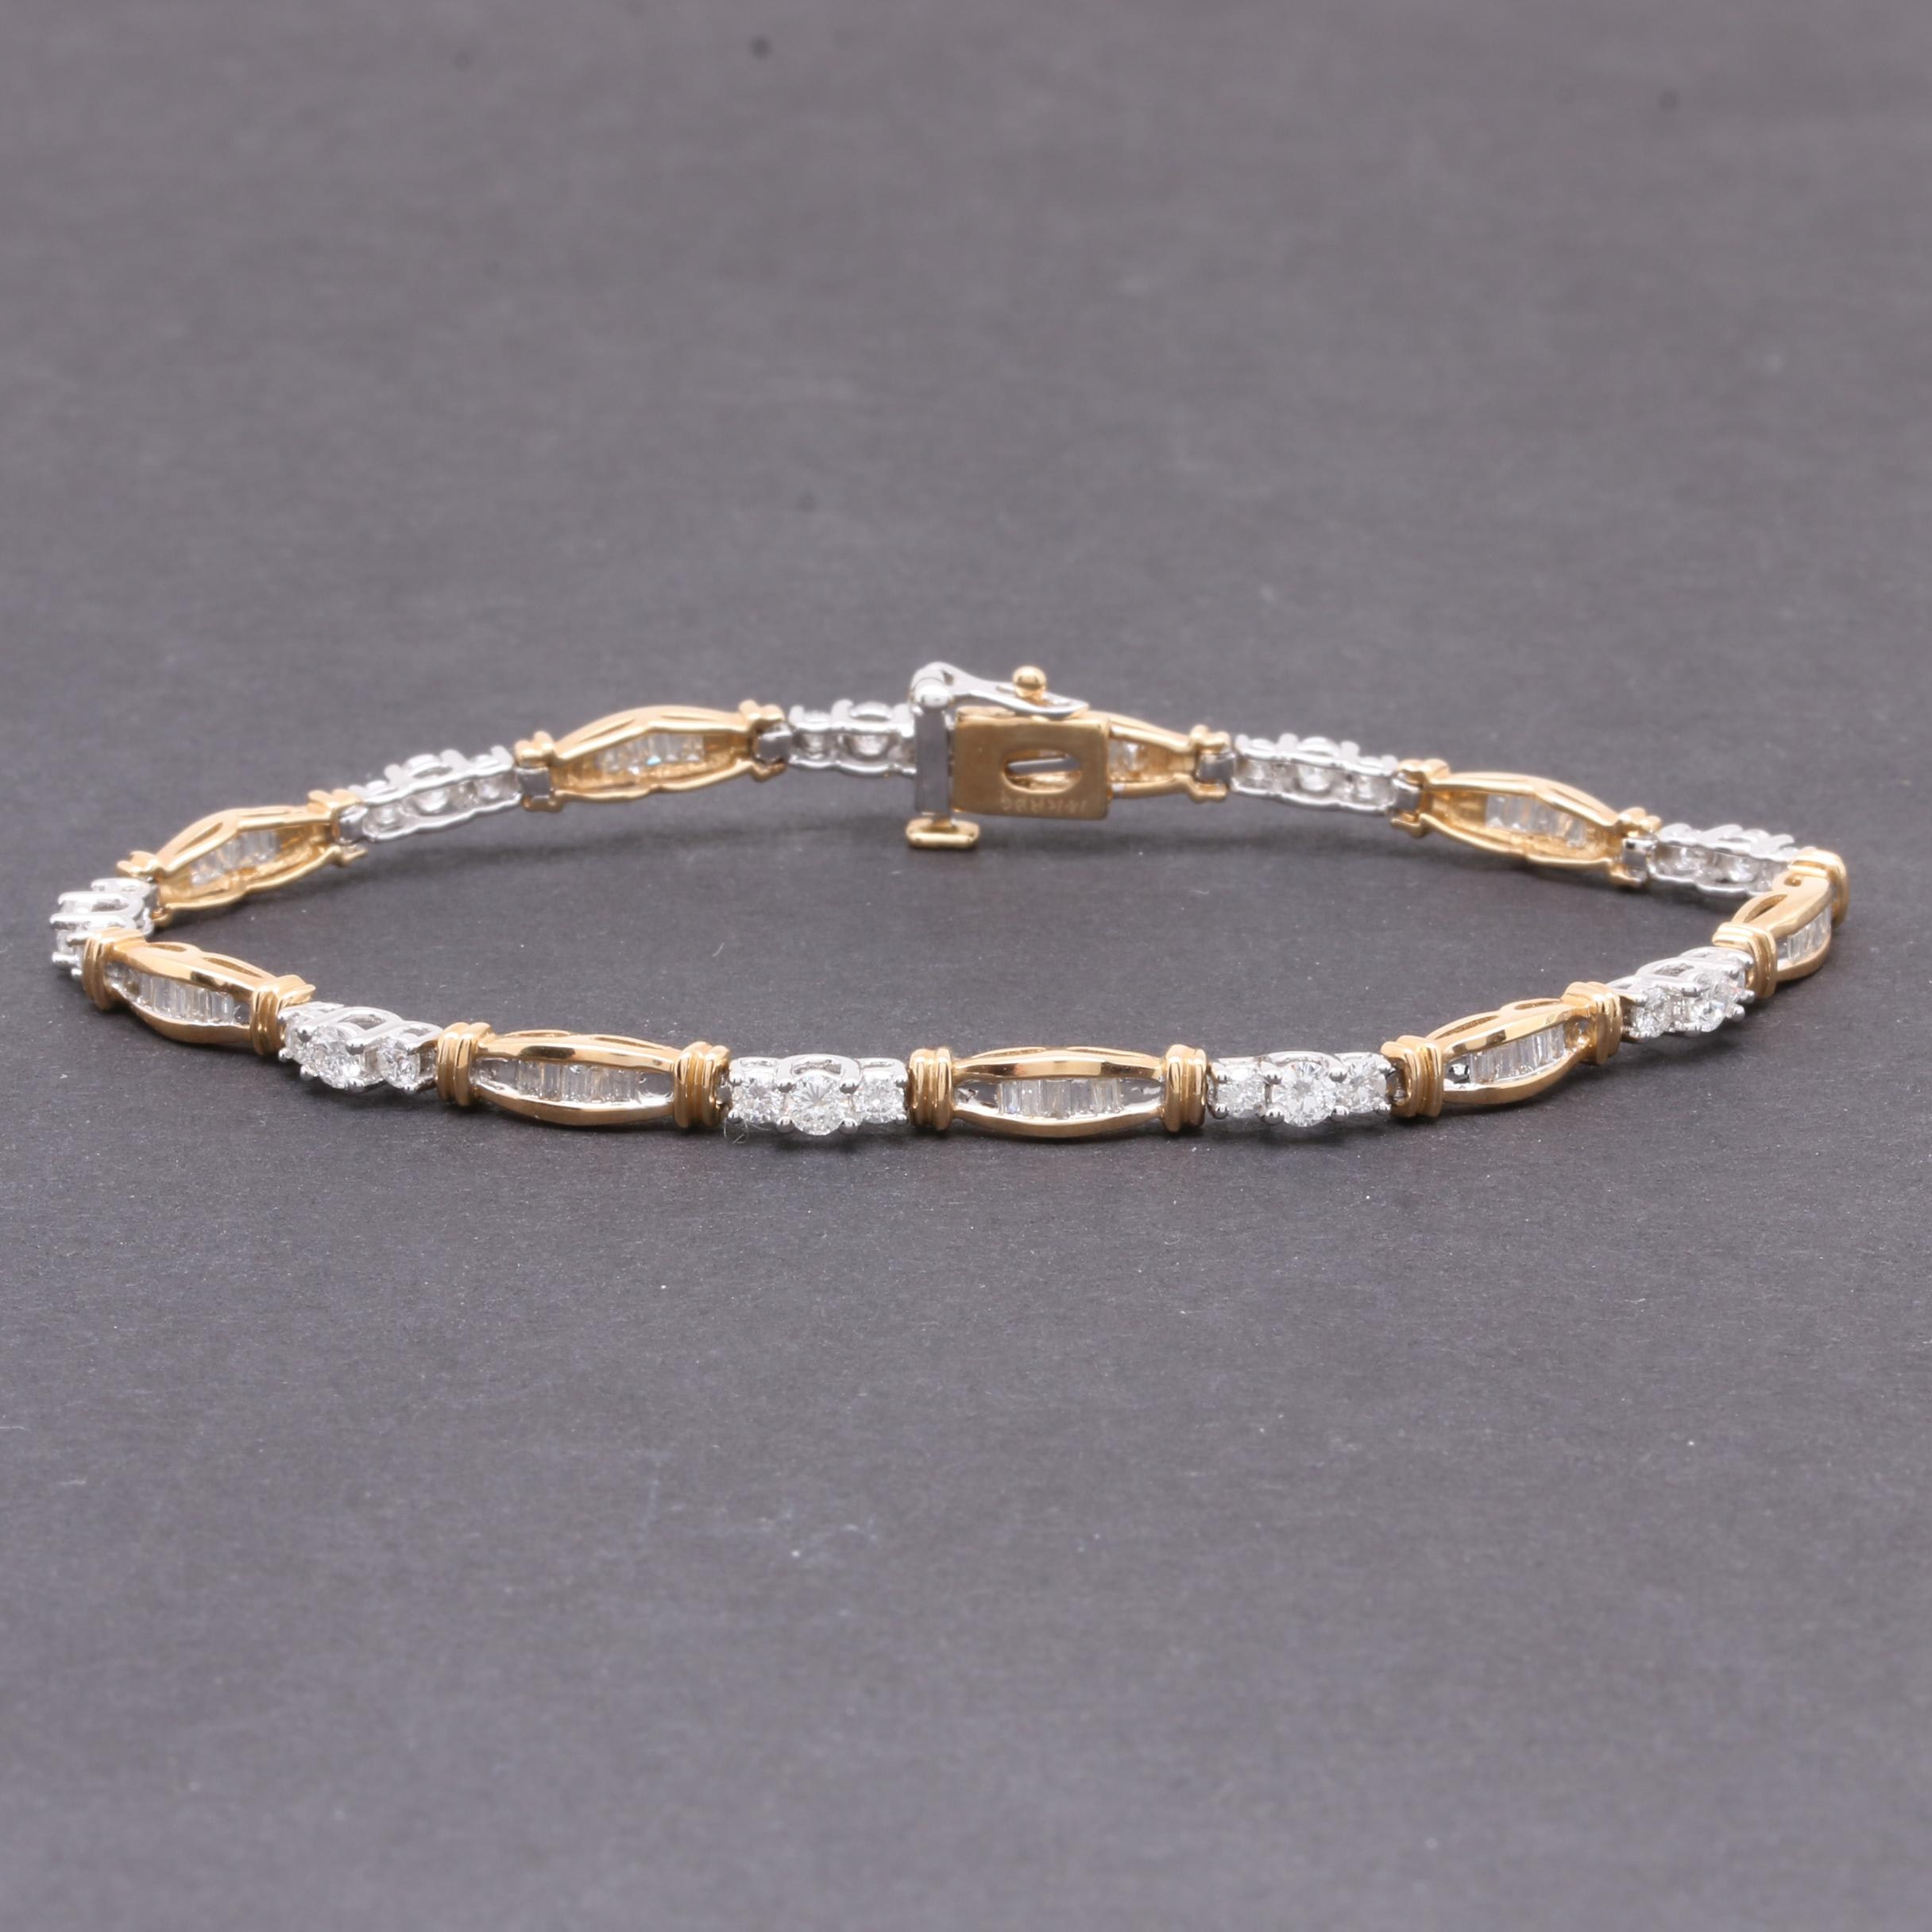 14K White and Yellow Gold 2.25 CTW Diamond Bracelet